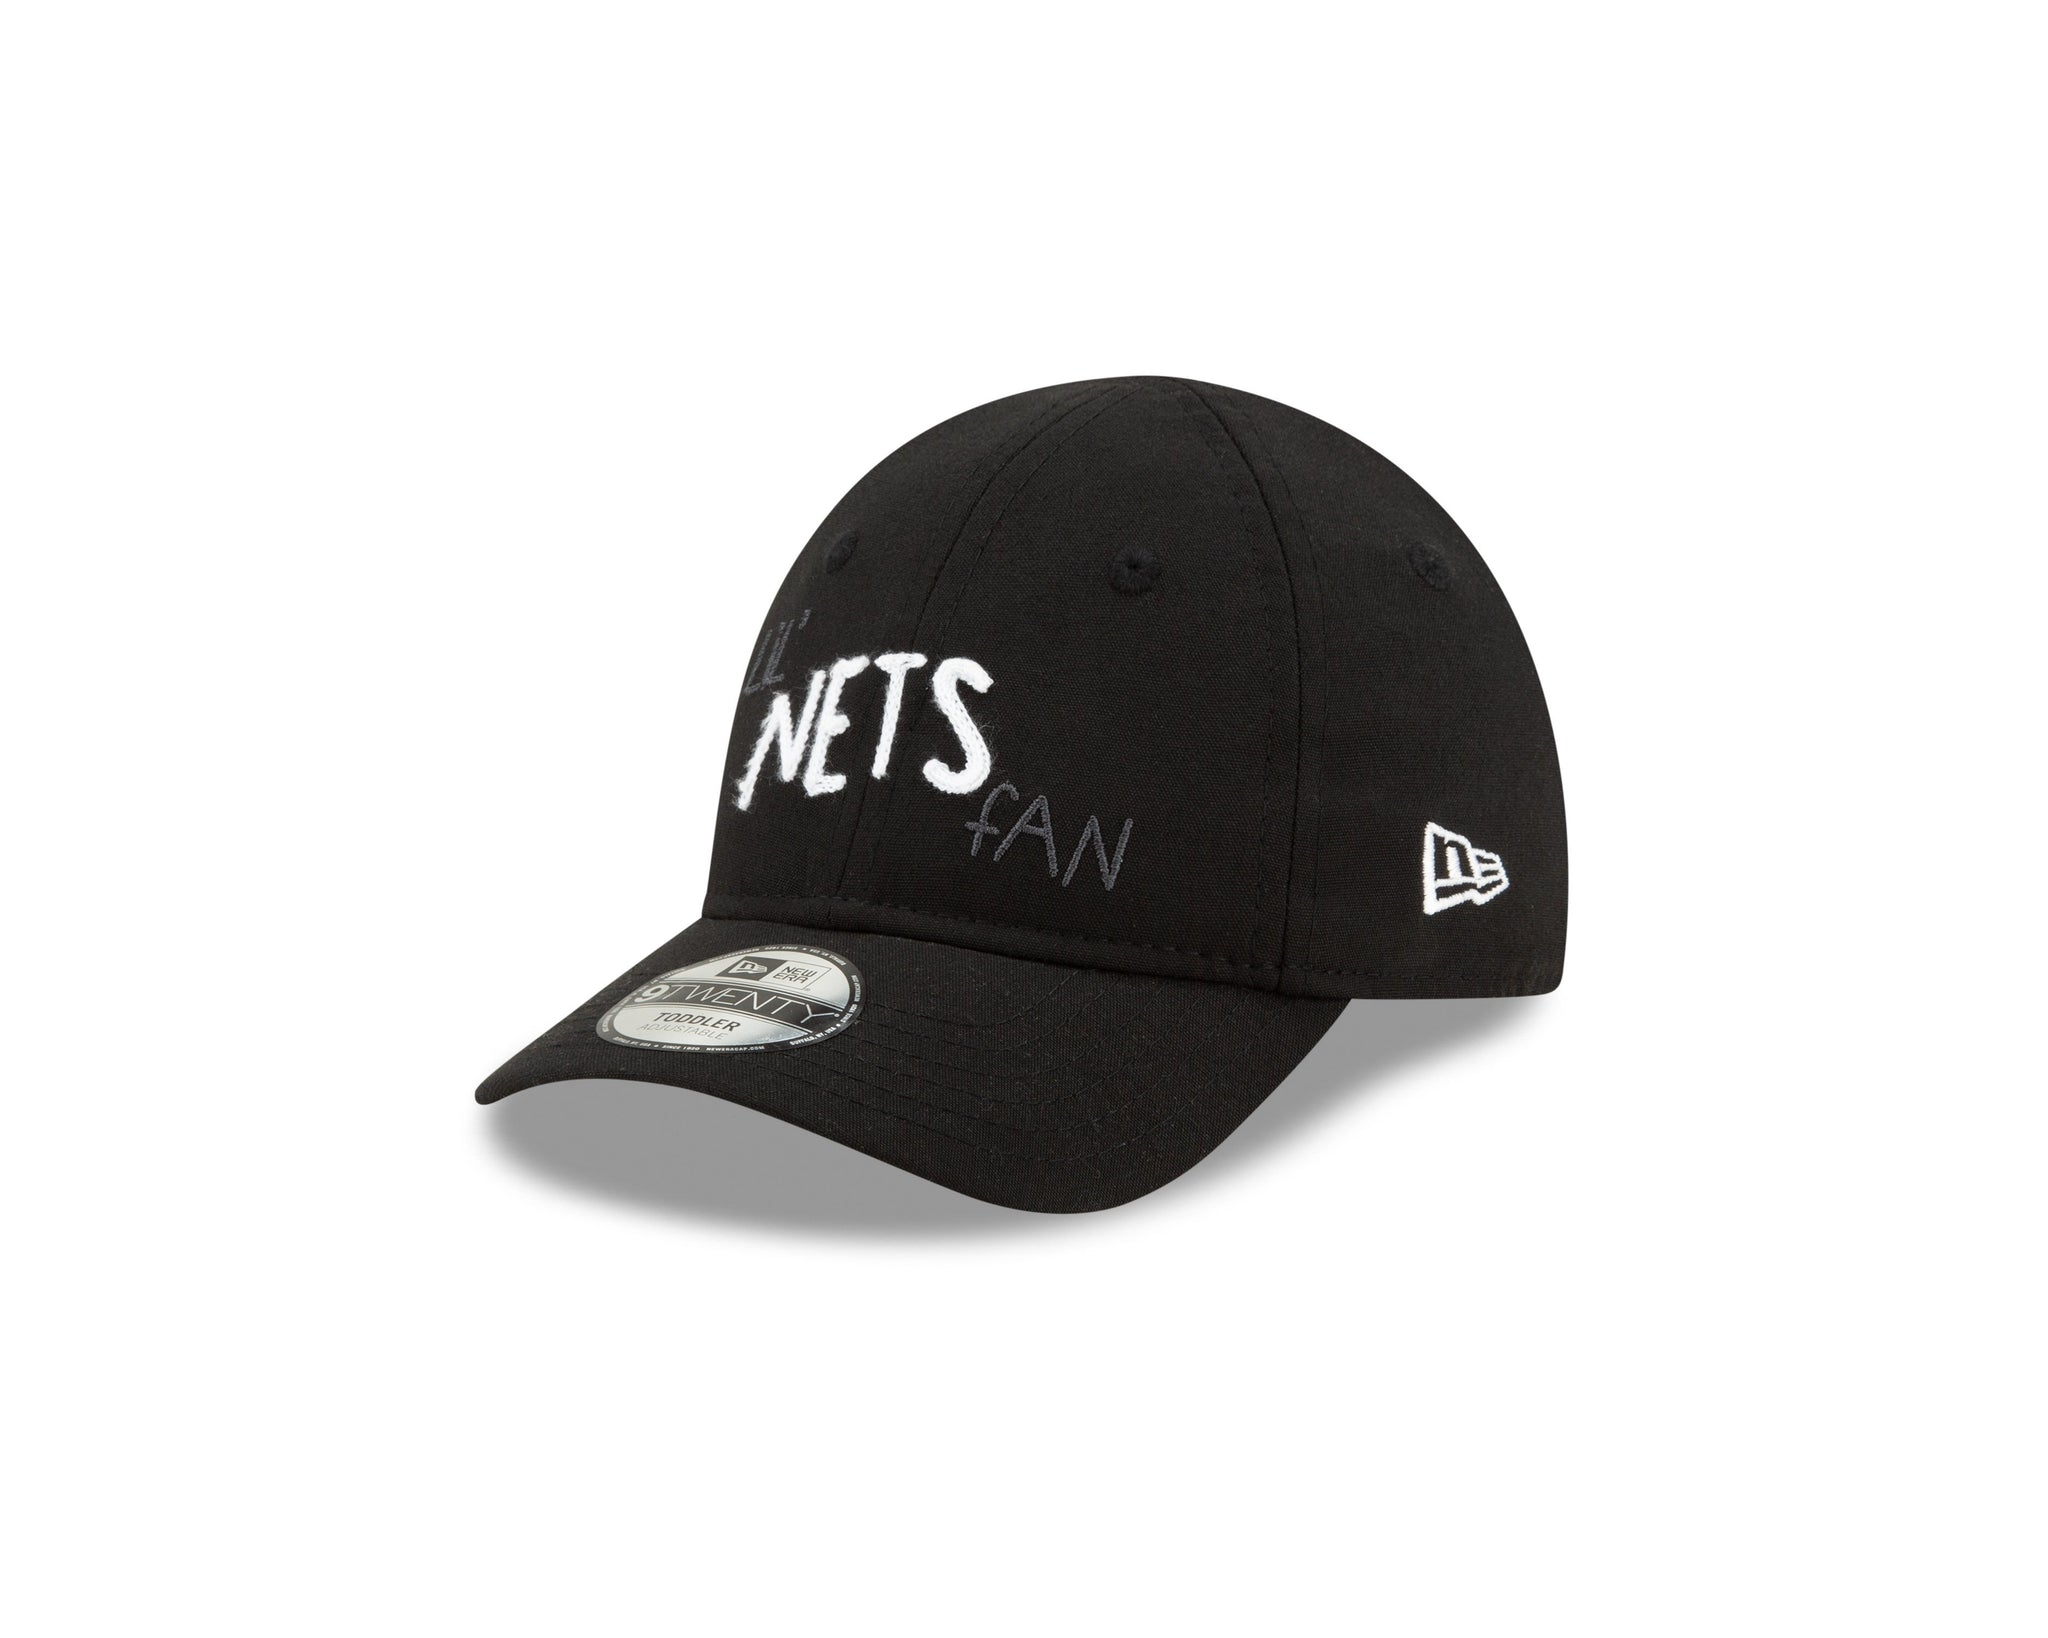 Toddler 9Twenty 'Lil Nets Fan' Cap